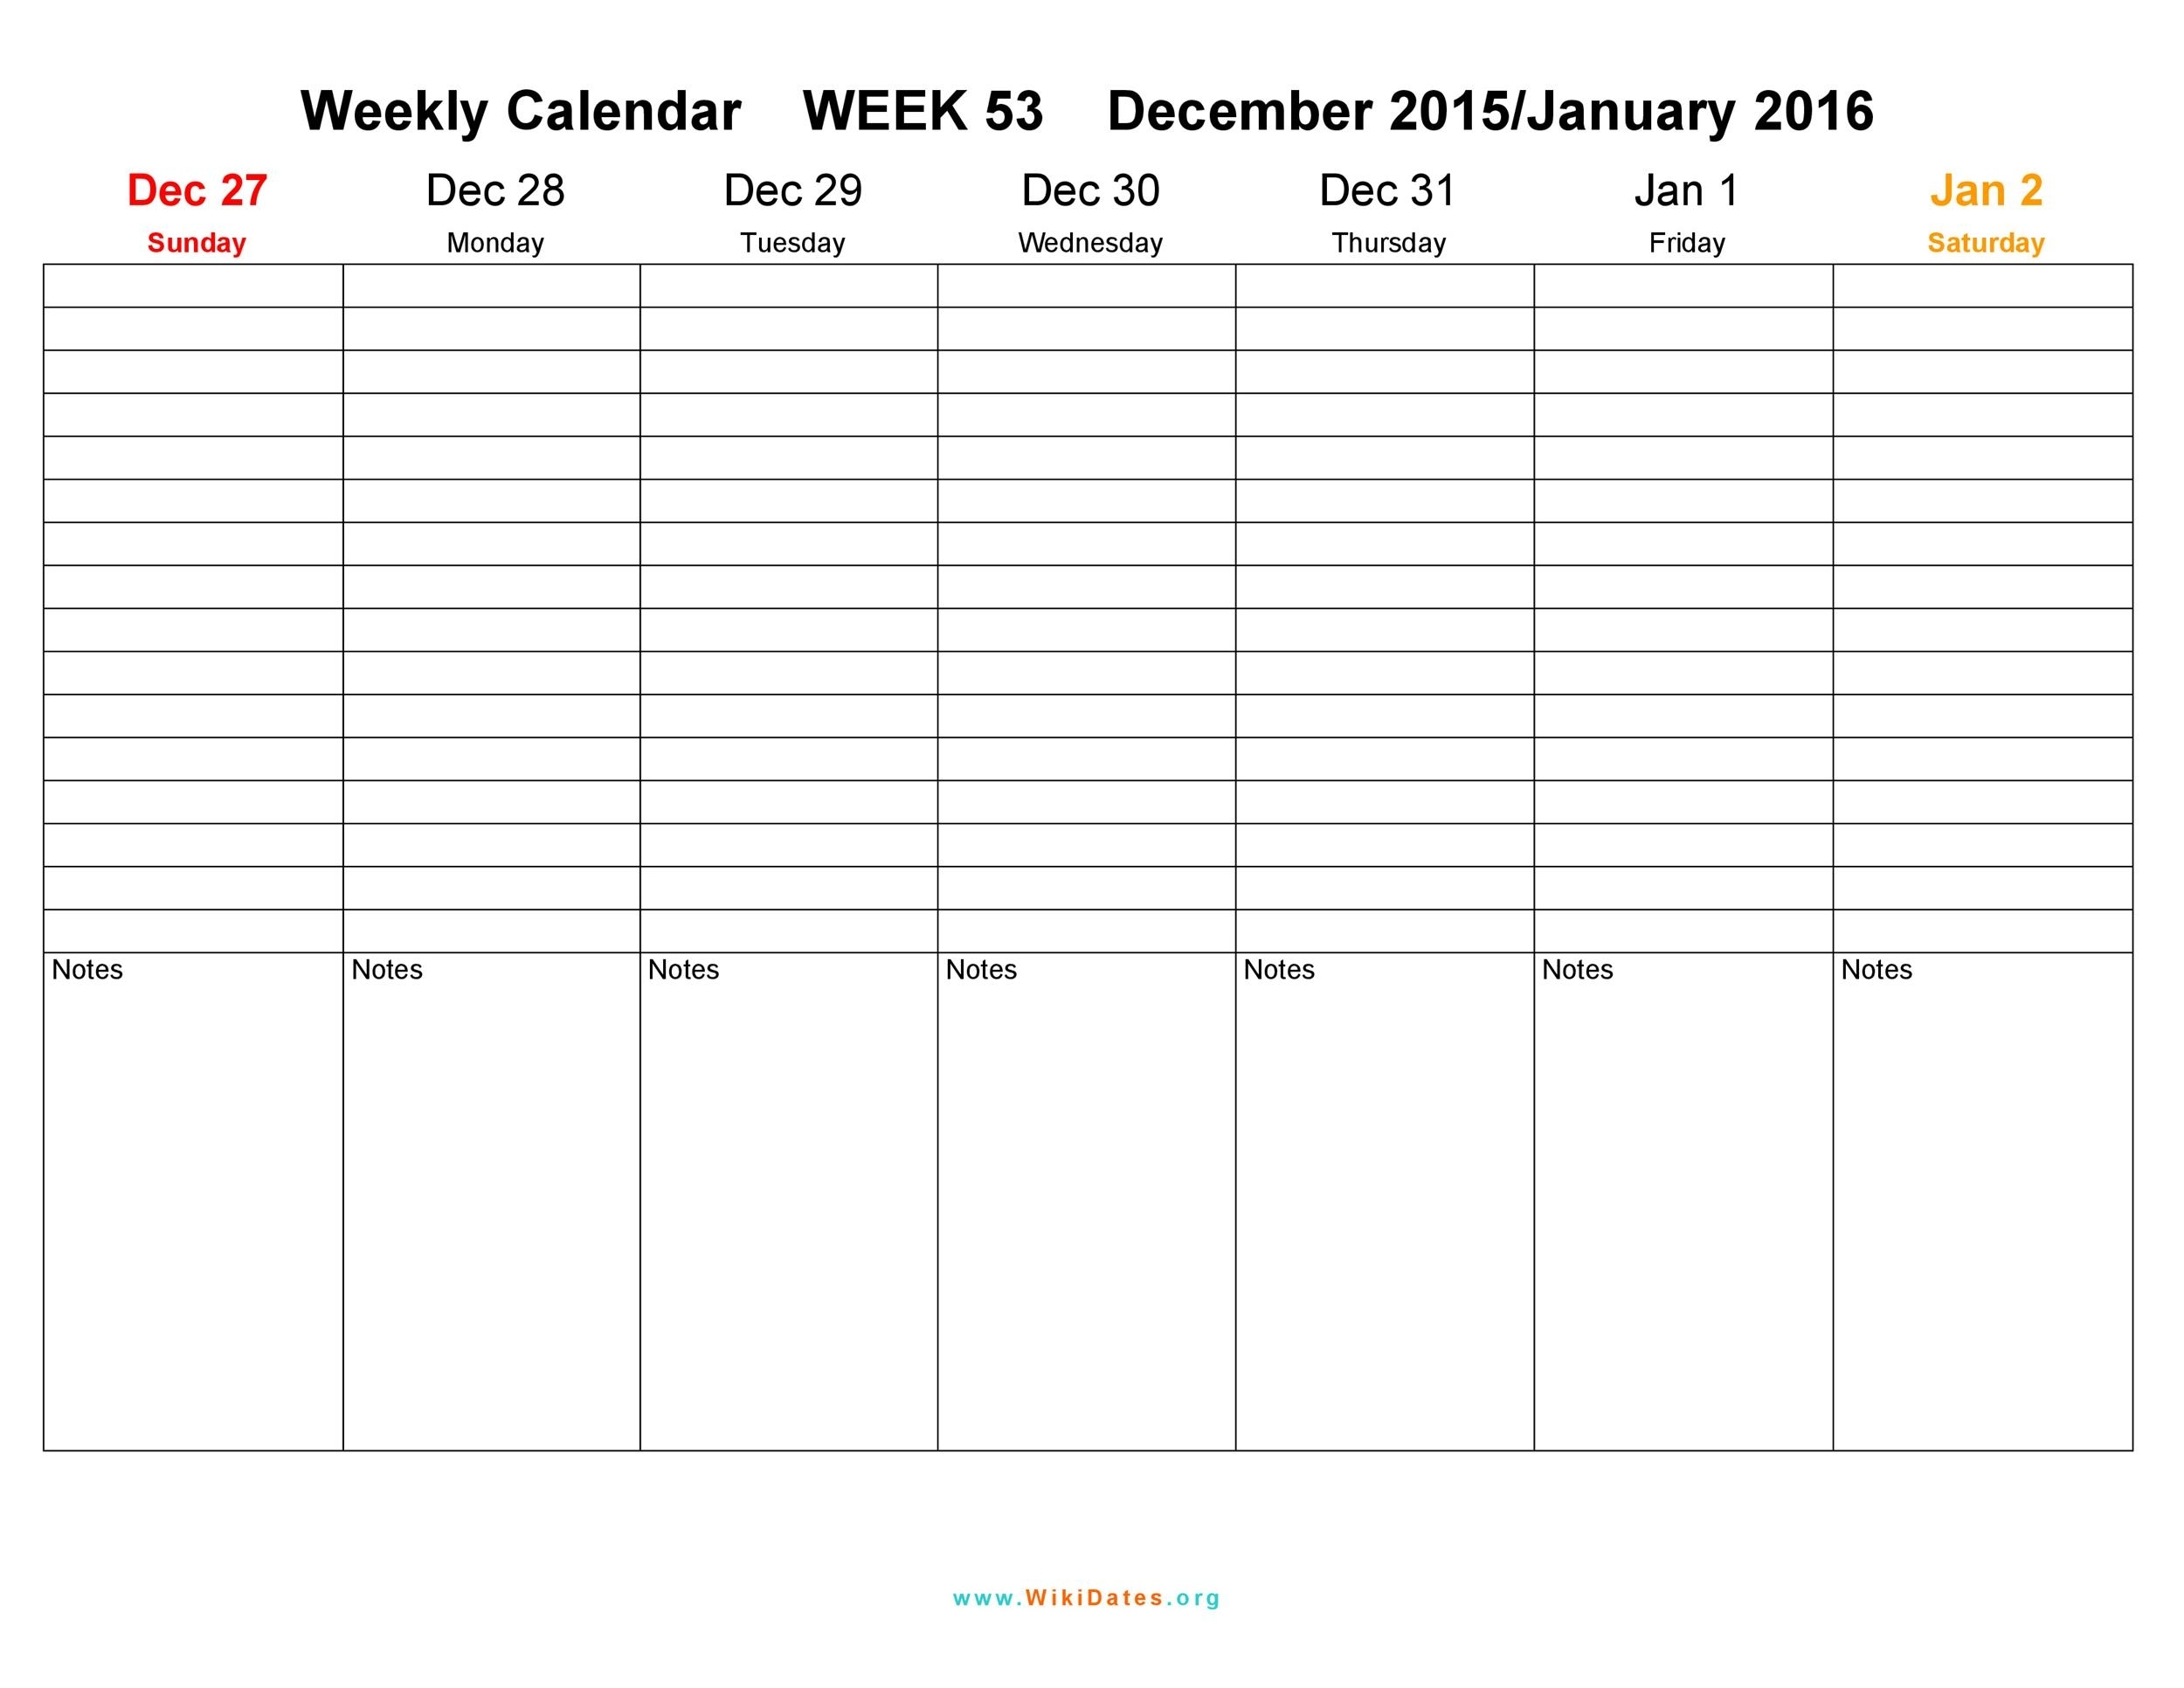 26 Blank Weekly Calendar Templates [Pdf, Excel, Word] ᐅ within Monsay Through Friday Calneder With Times